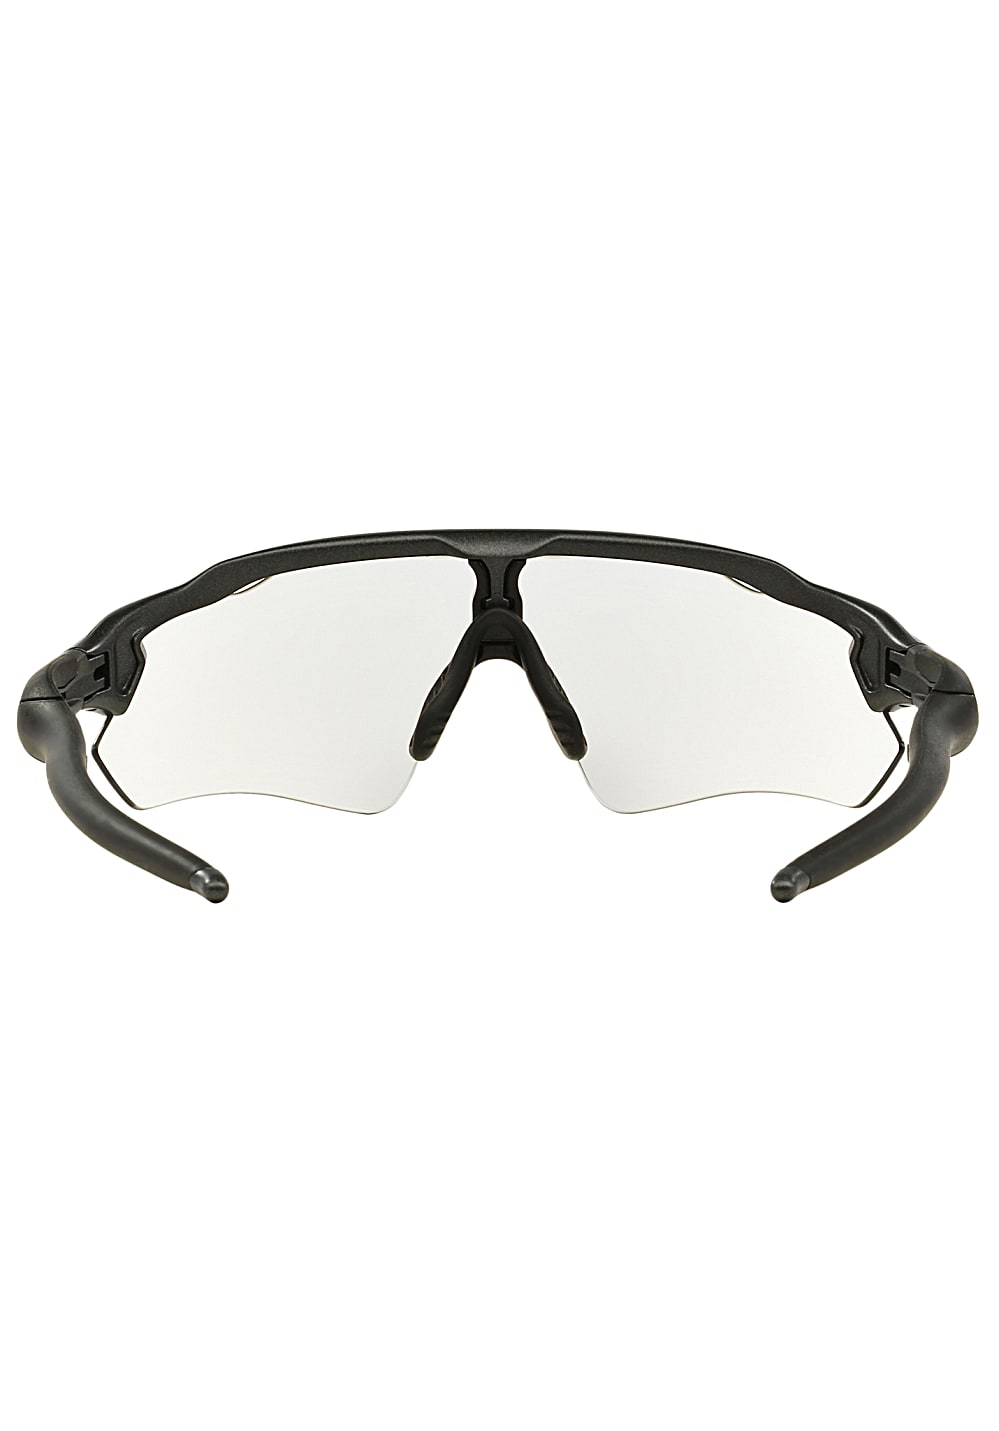 c8b05c5204 ... Sports Glasses · OAKLEY Radar EV Path - Sunglasses - Grey. Back to  Overview. 1  2  3  4. Previous. Next